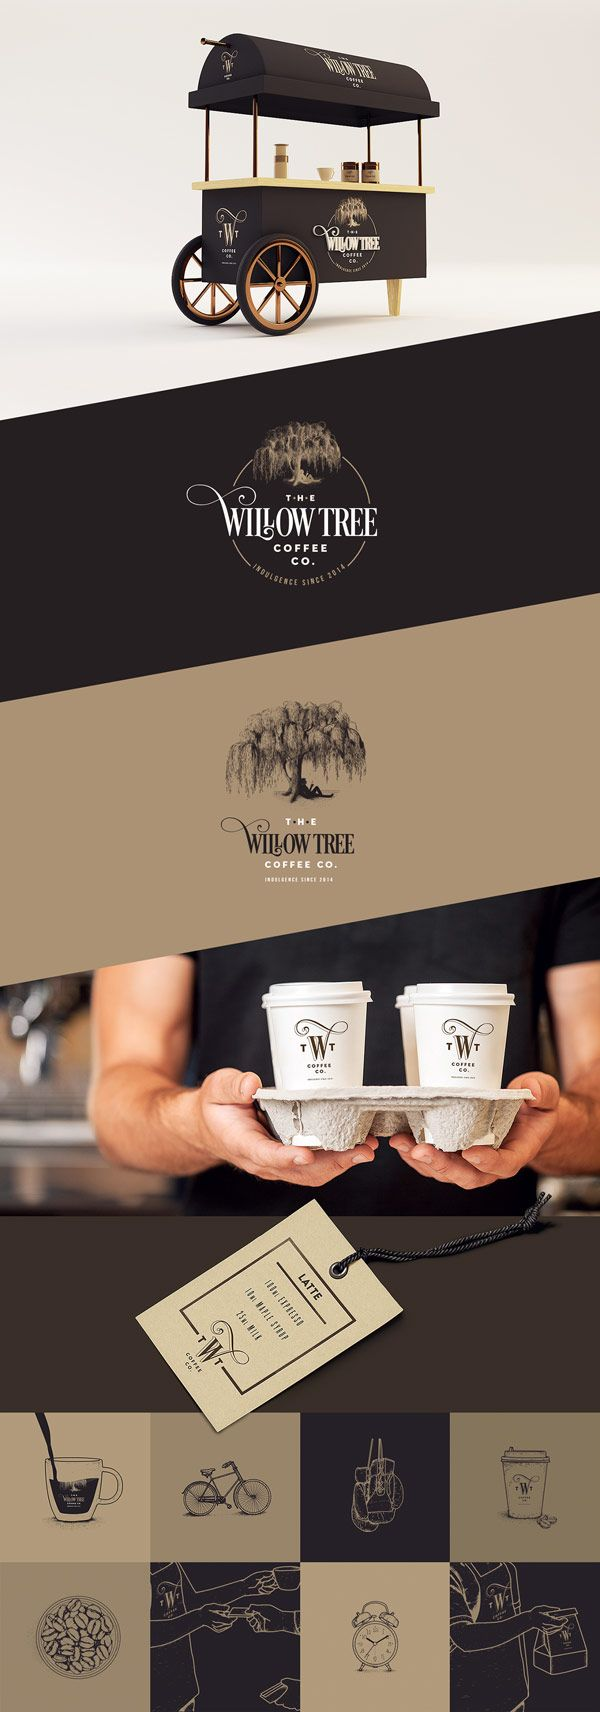 The sophisticated brand identity provides a taste of the high quality Brazilian coffee.